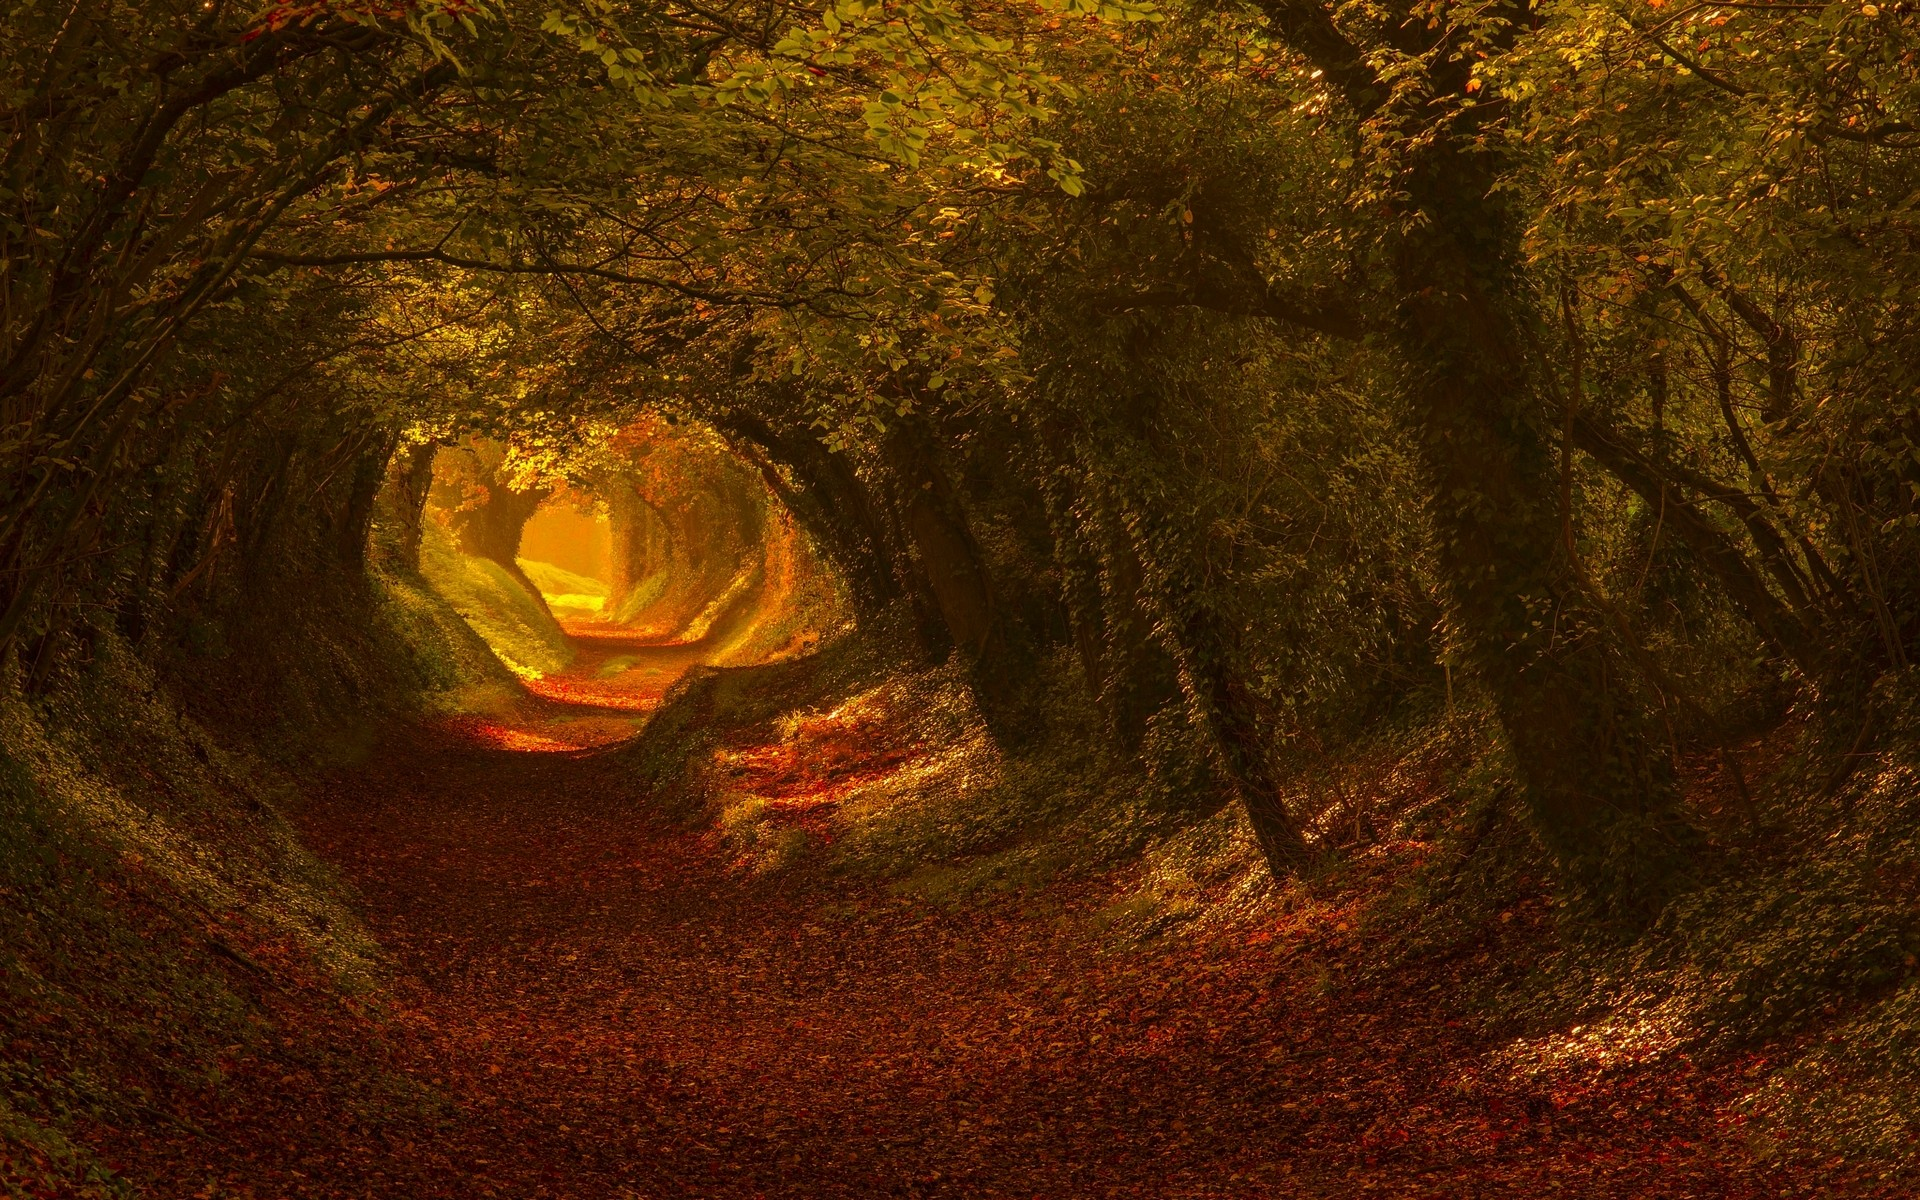 General 1920x1200 nature trees fall leaves tunnel sunlight landscape foliage